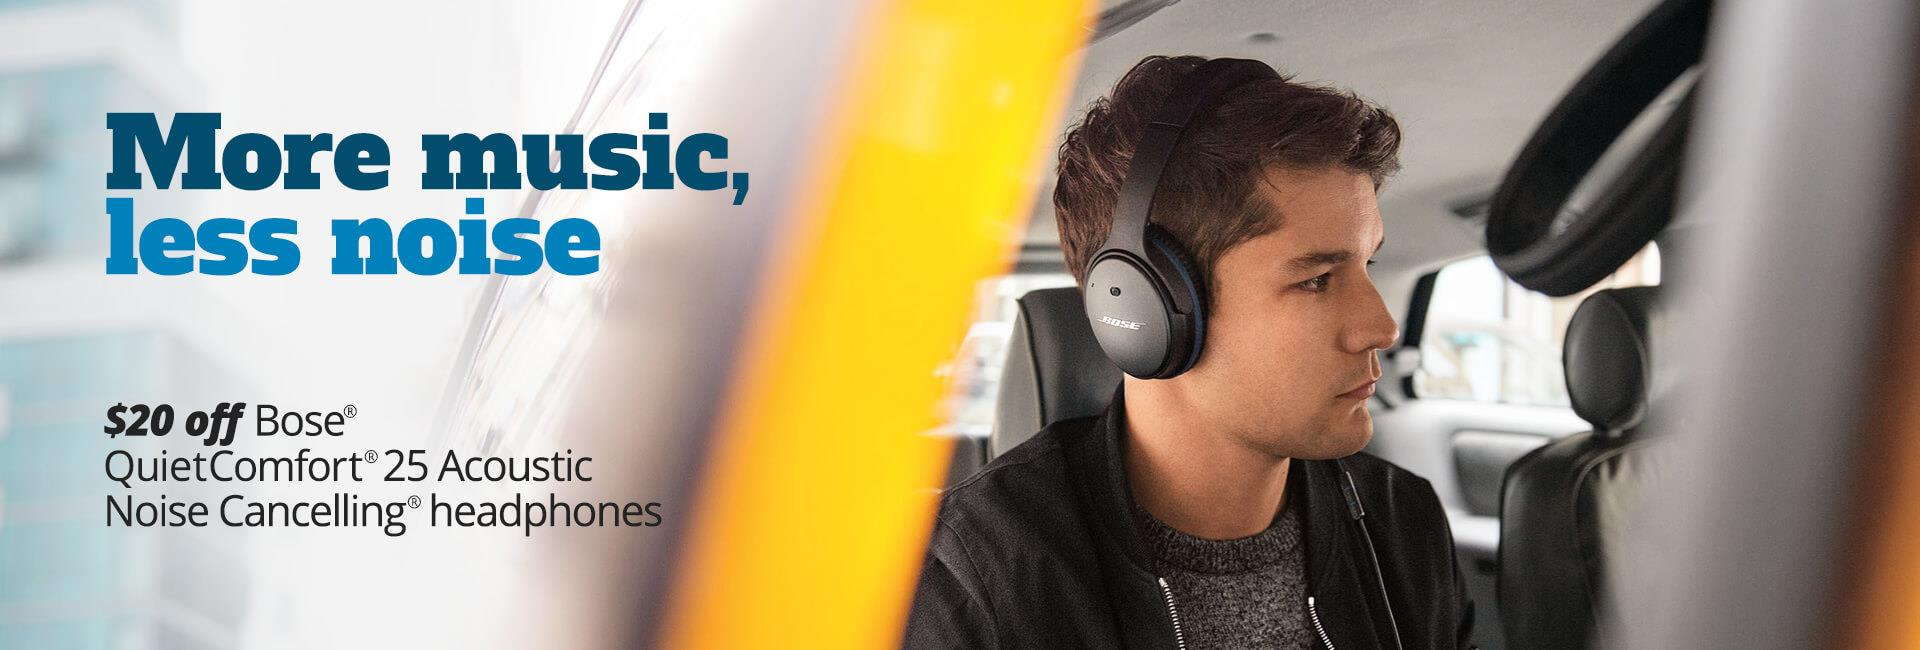 Bose QC25  sale save $20